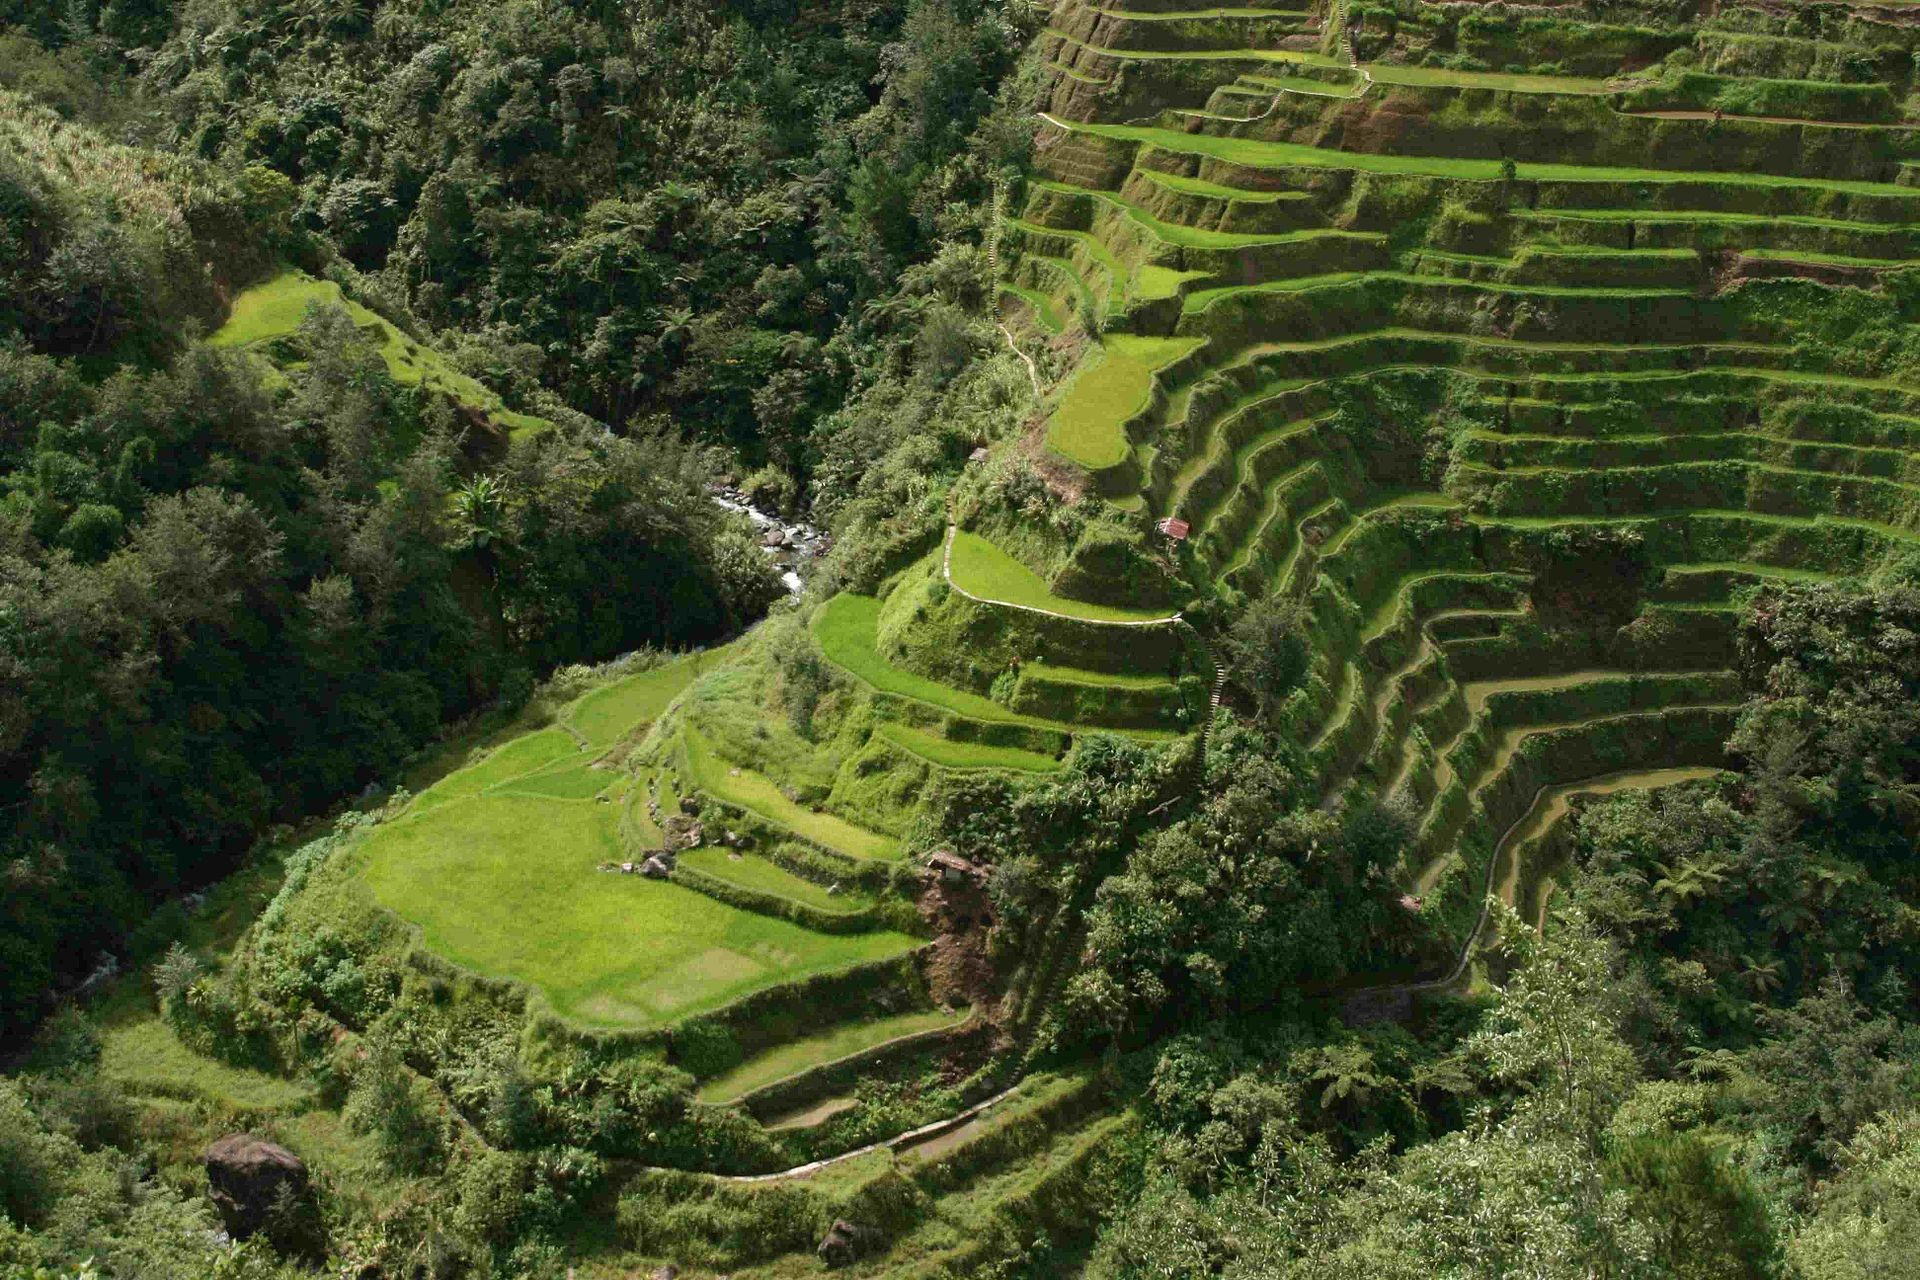 Closer View of the Banaue Rice Terraces, Agricmarkting.jpg